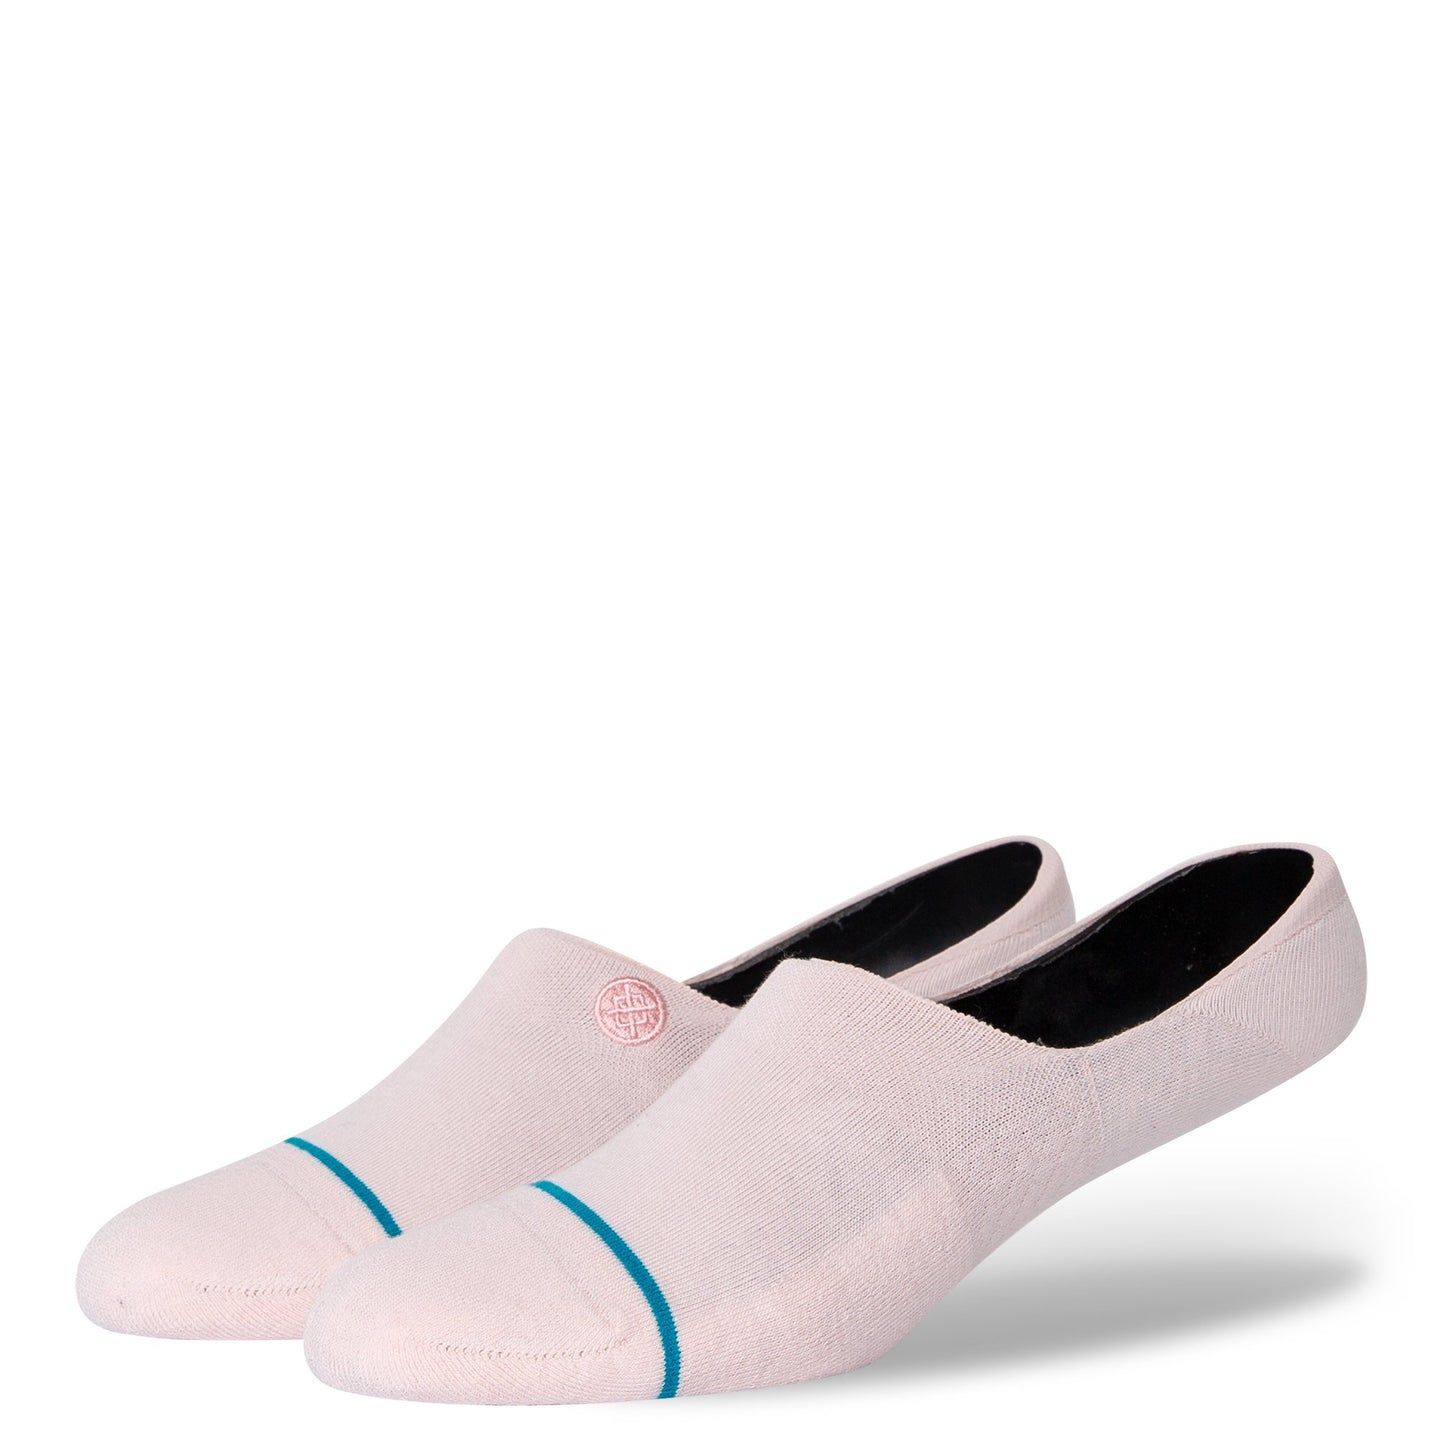 Chaussettes Stance - ICON NO SHOW - Rose